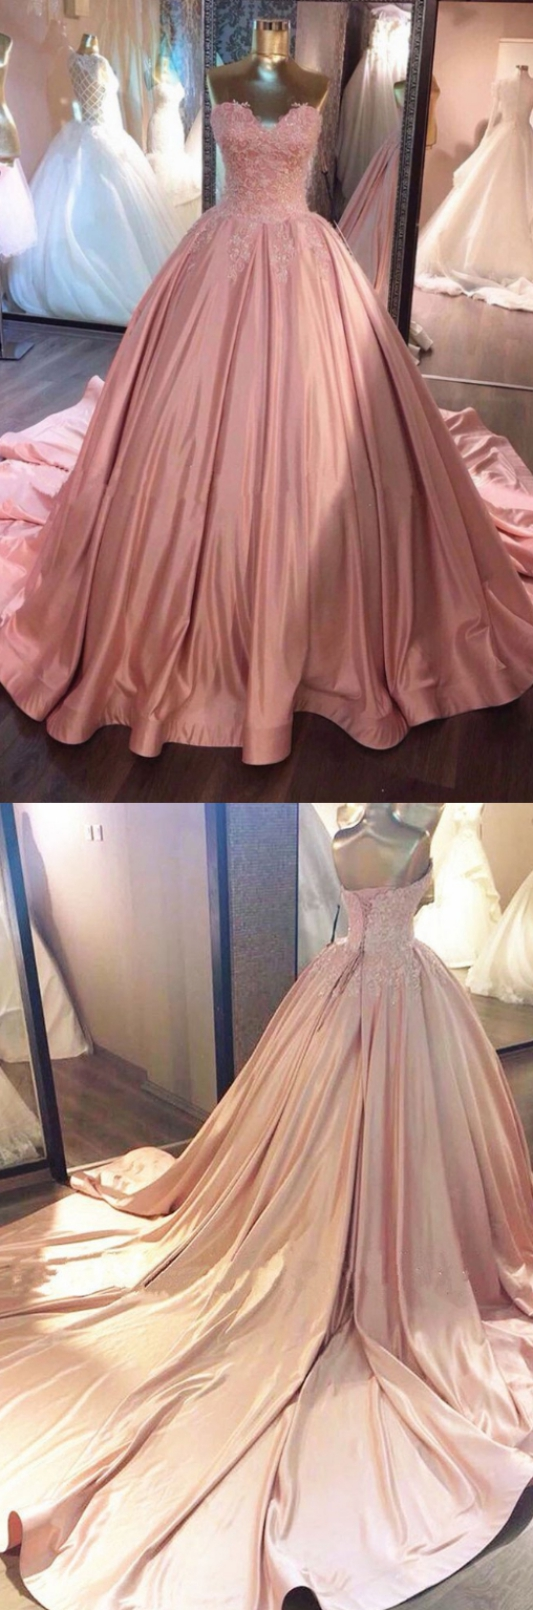 Outlet great pink prom dresses long prom dresses sleeveless prom